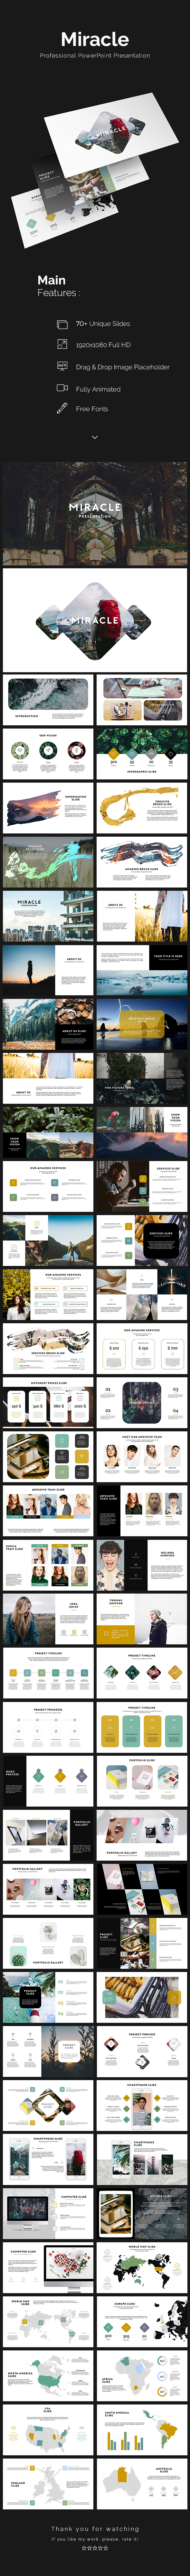 Miracle Presentation - PowerPoint Templates Presentation Templates